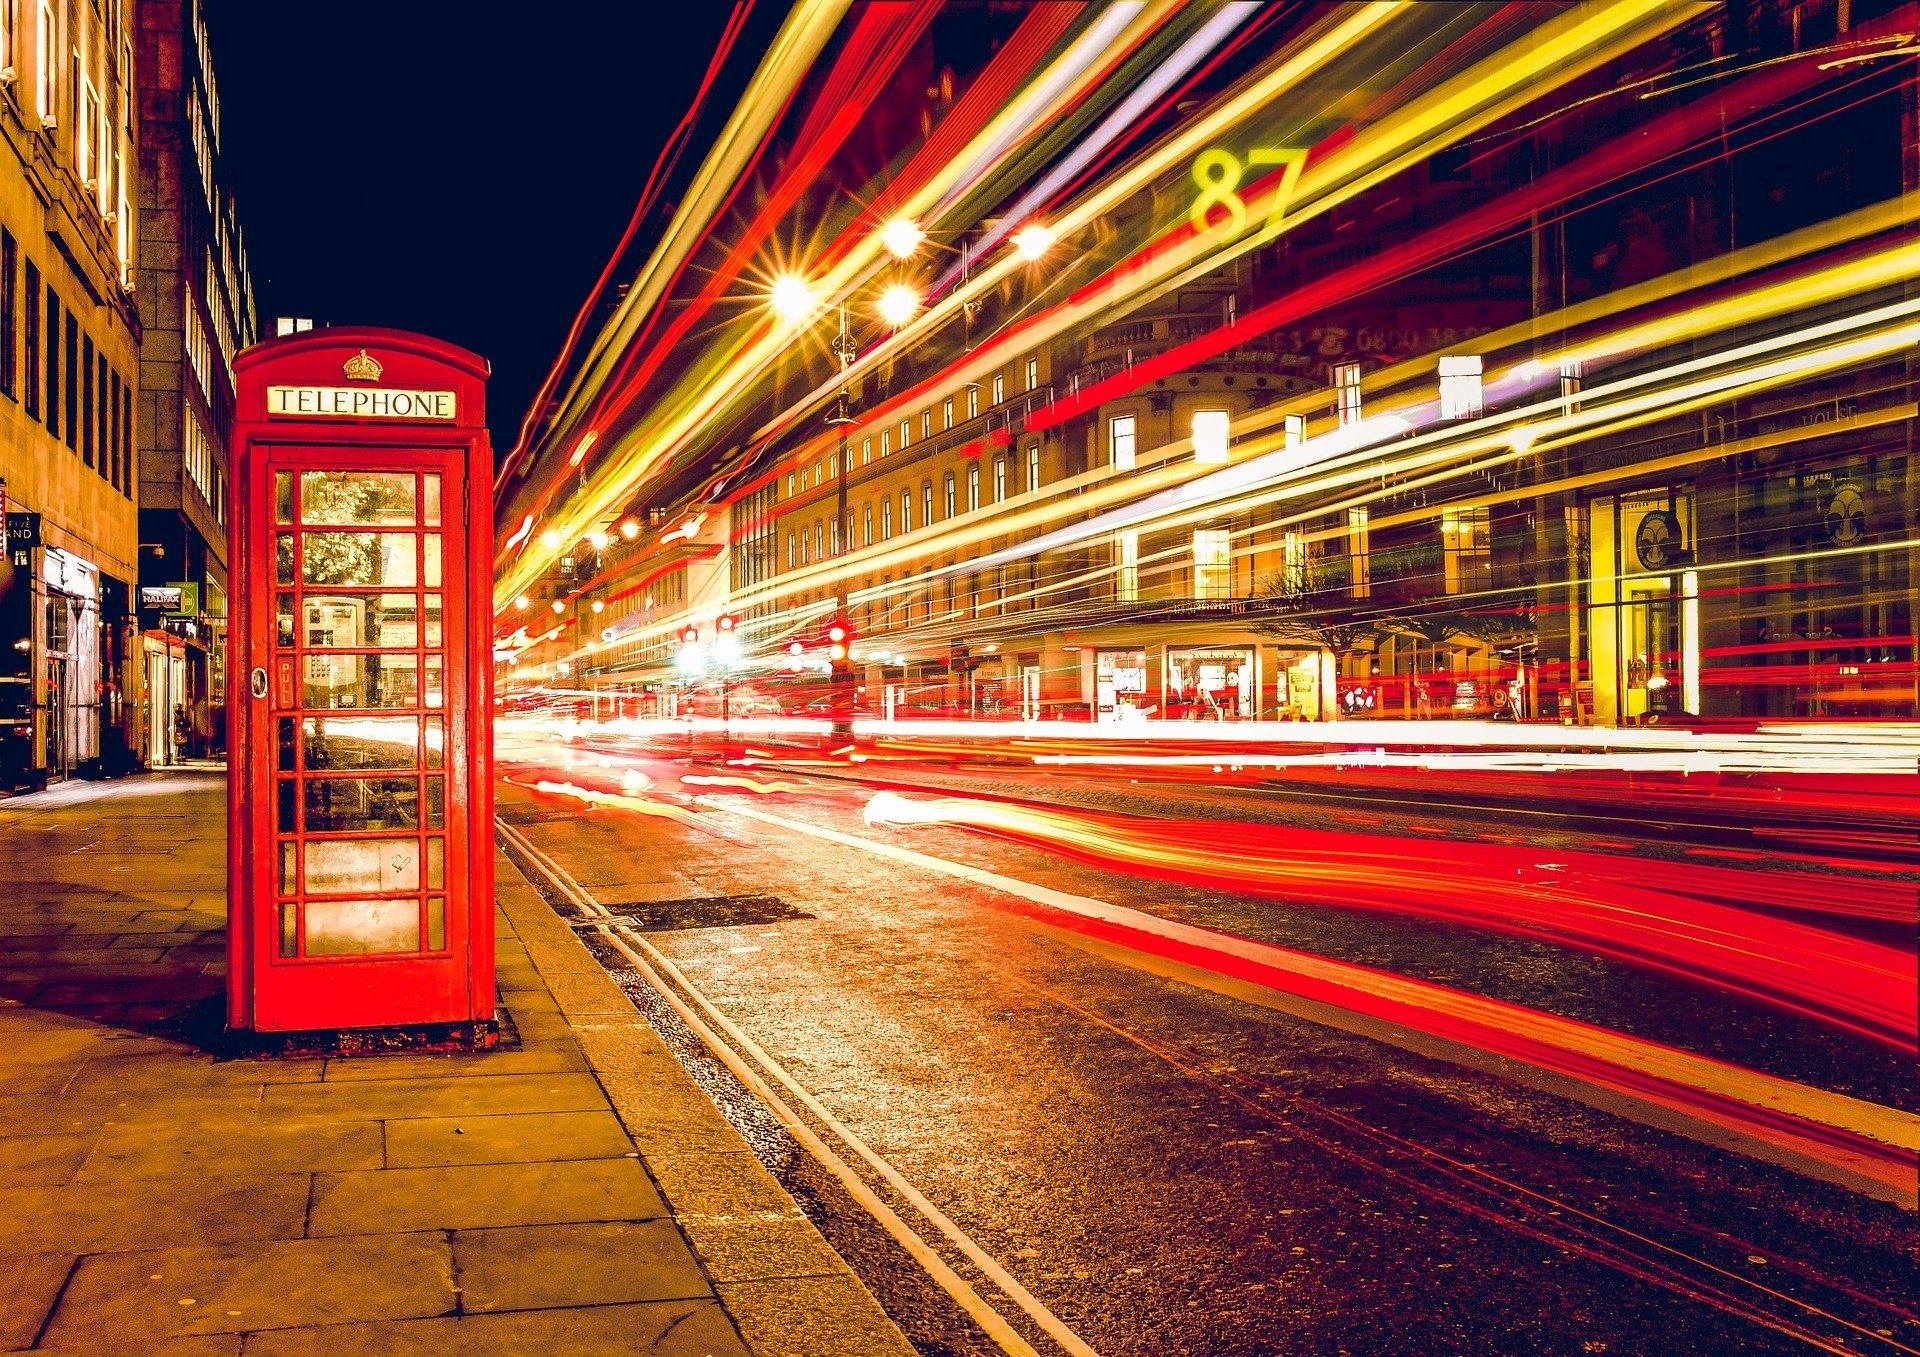 Telephone box electic lights PIXABAY free to use